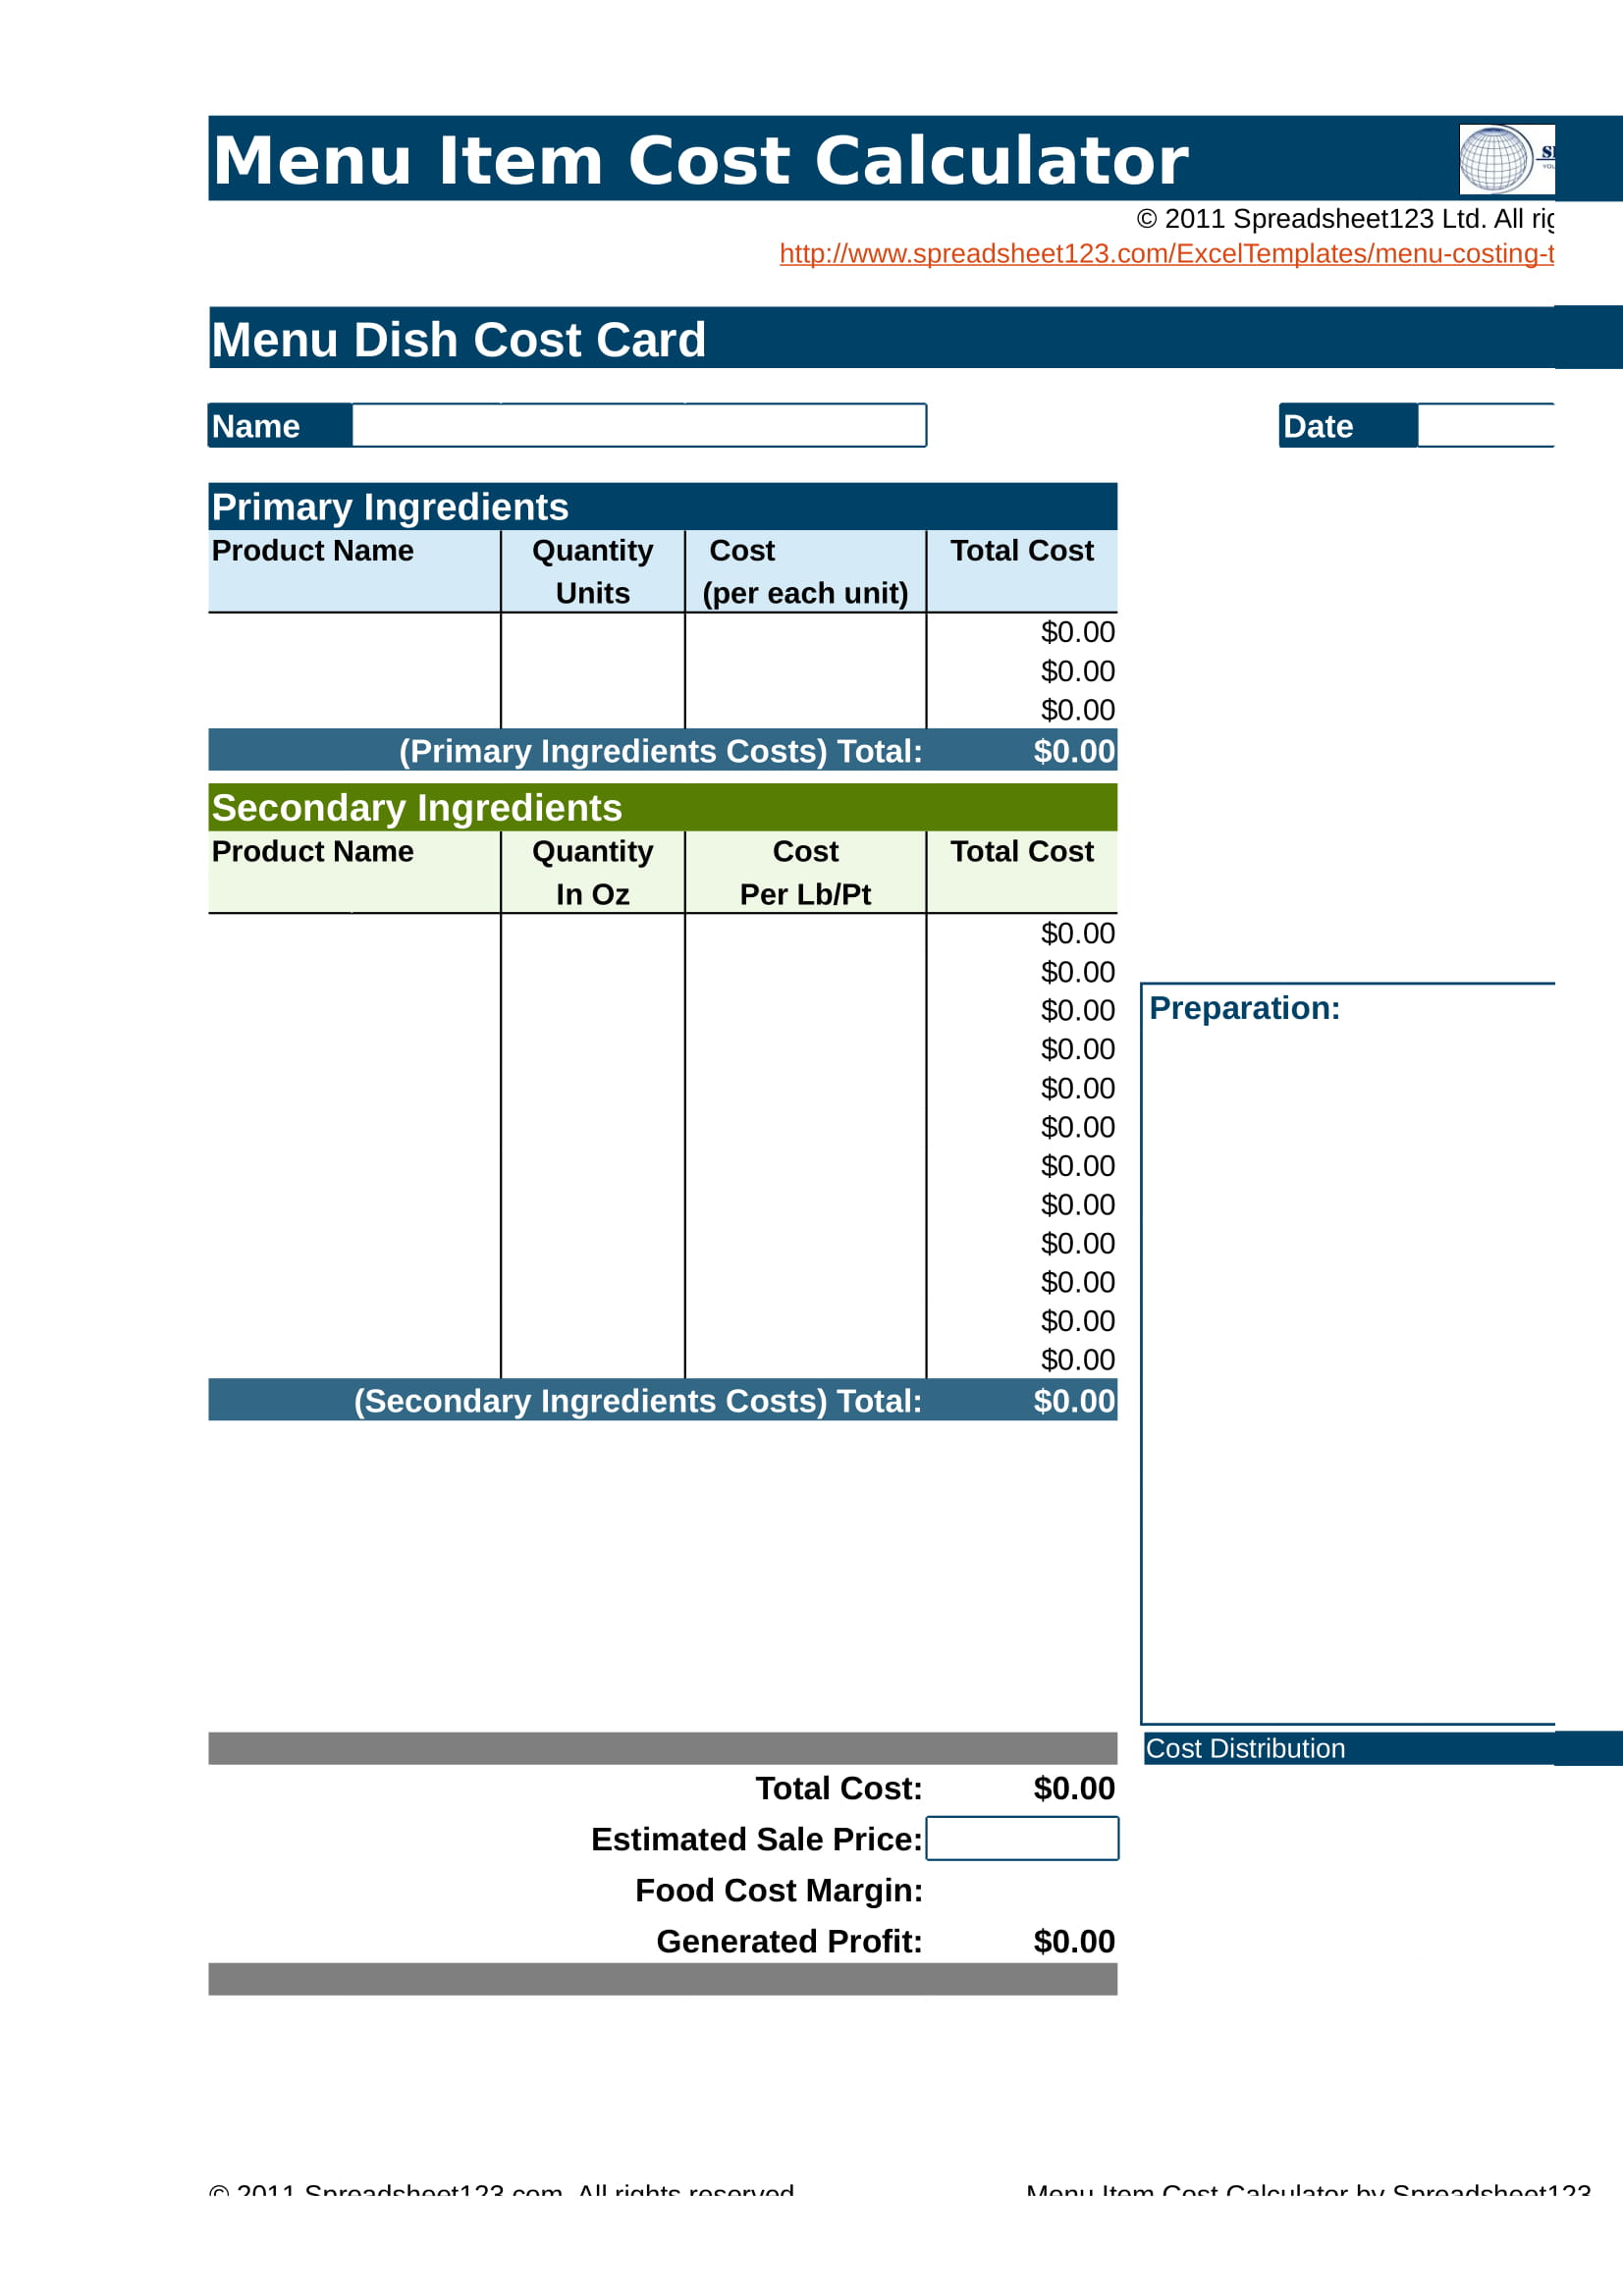 restaurant menu item cost calculator form 01